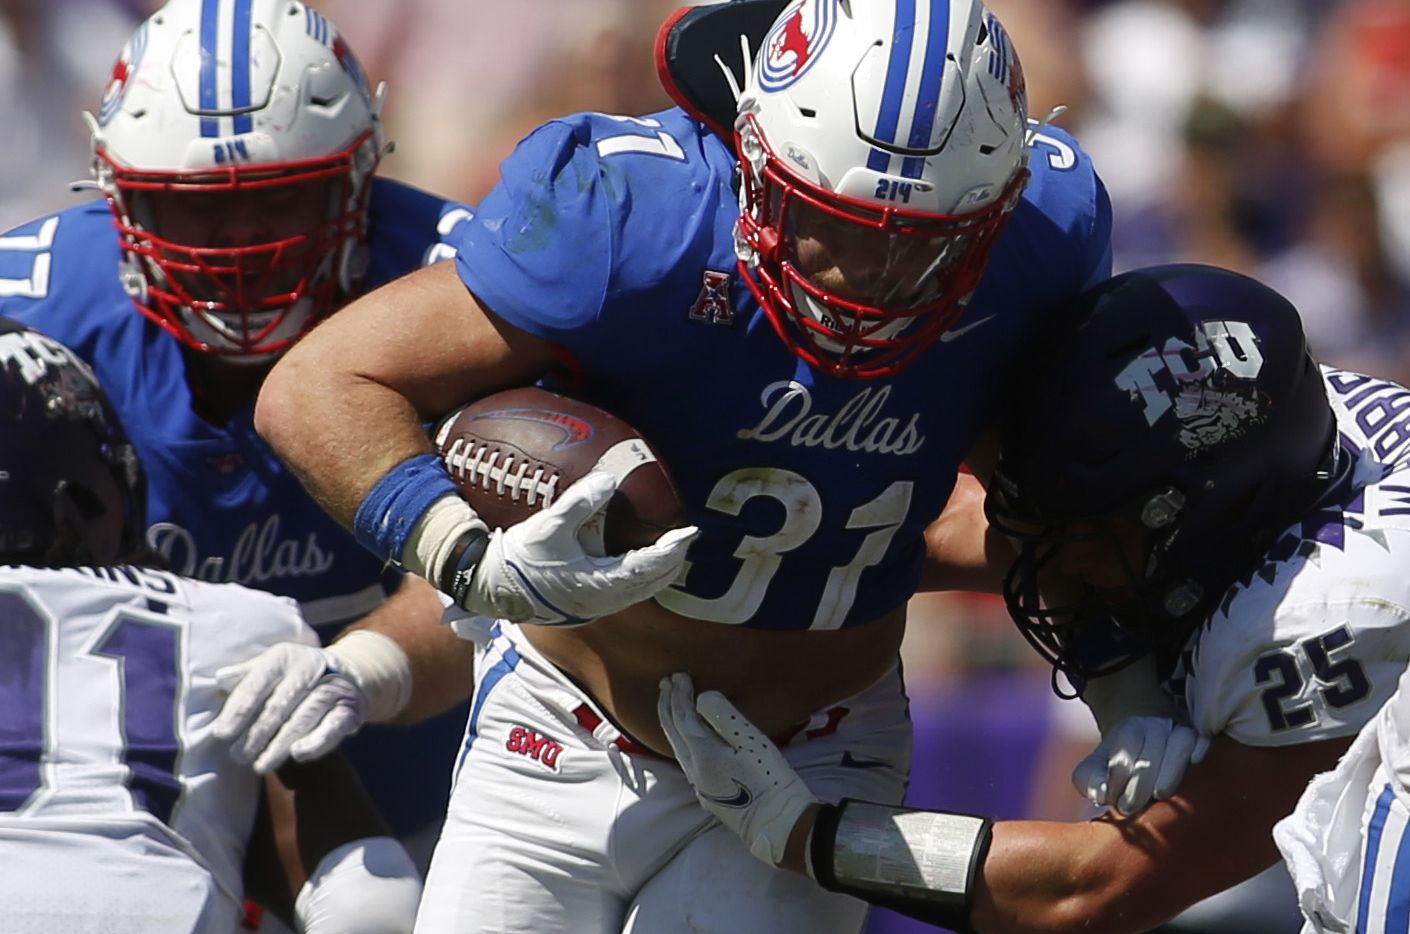 SMU running back Tyler Lavine (31) breaks into the secondary as TCU linebacker Wyatt Harris (25) moves in to make the tackle during 4th quarter action. SMU won 42-34.